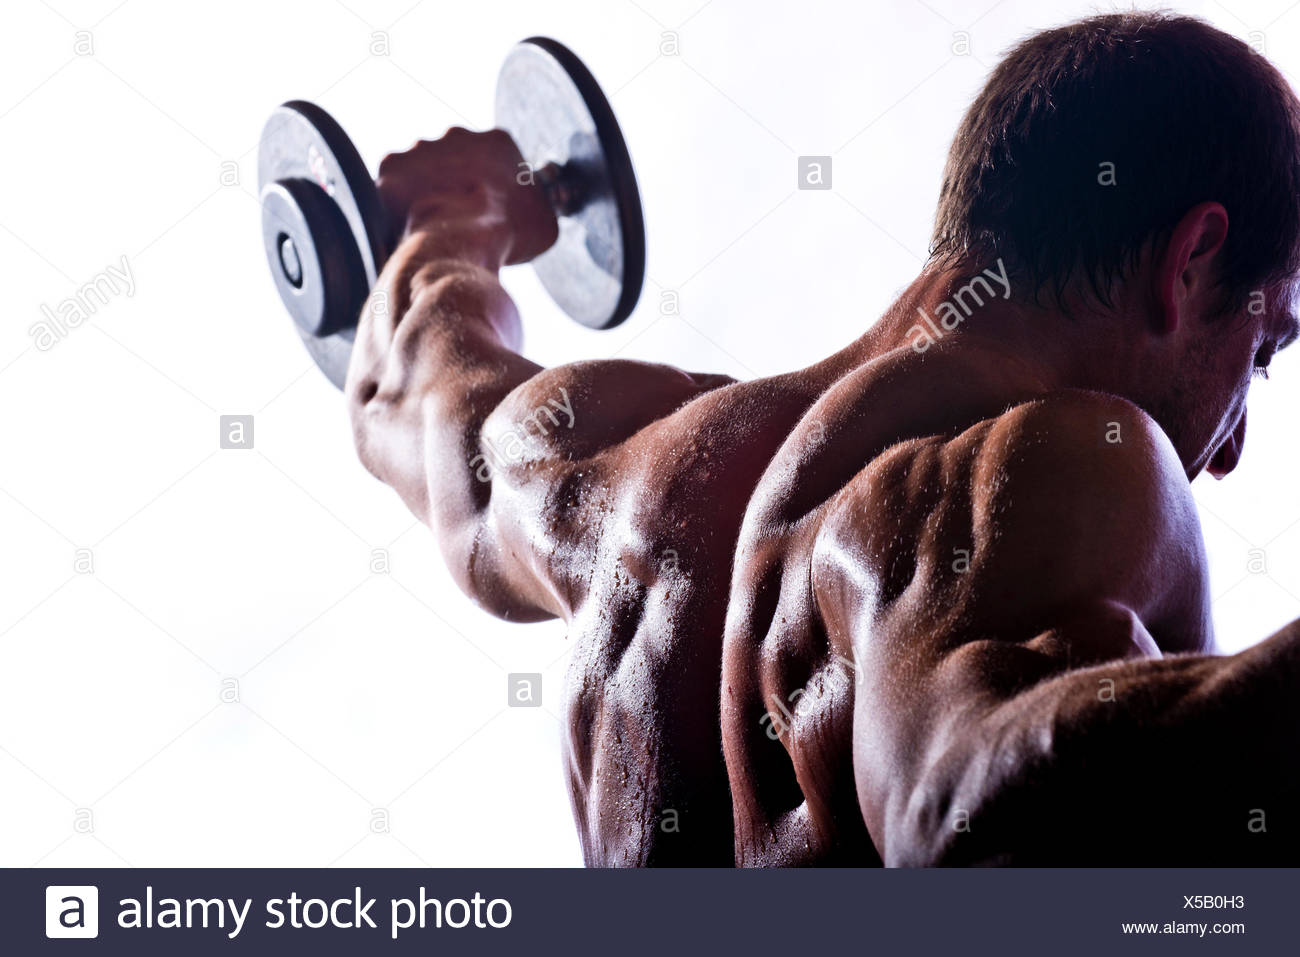 Close-up of a crossfit athlete working out. - Stock Image